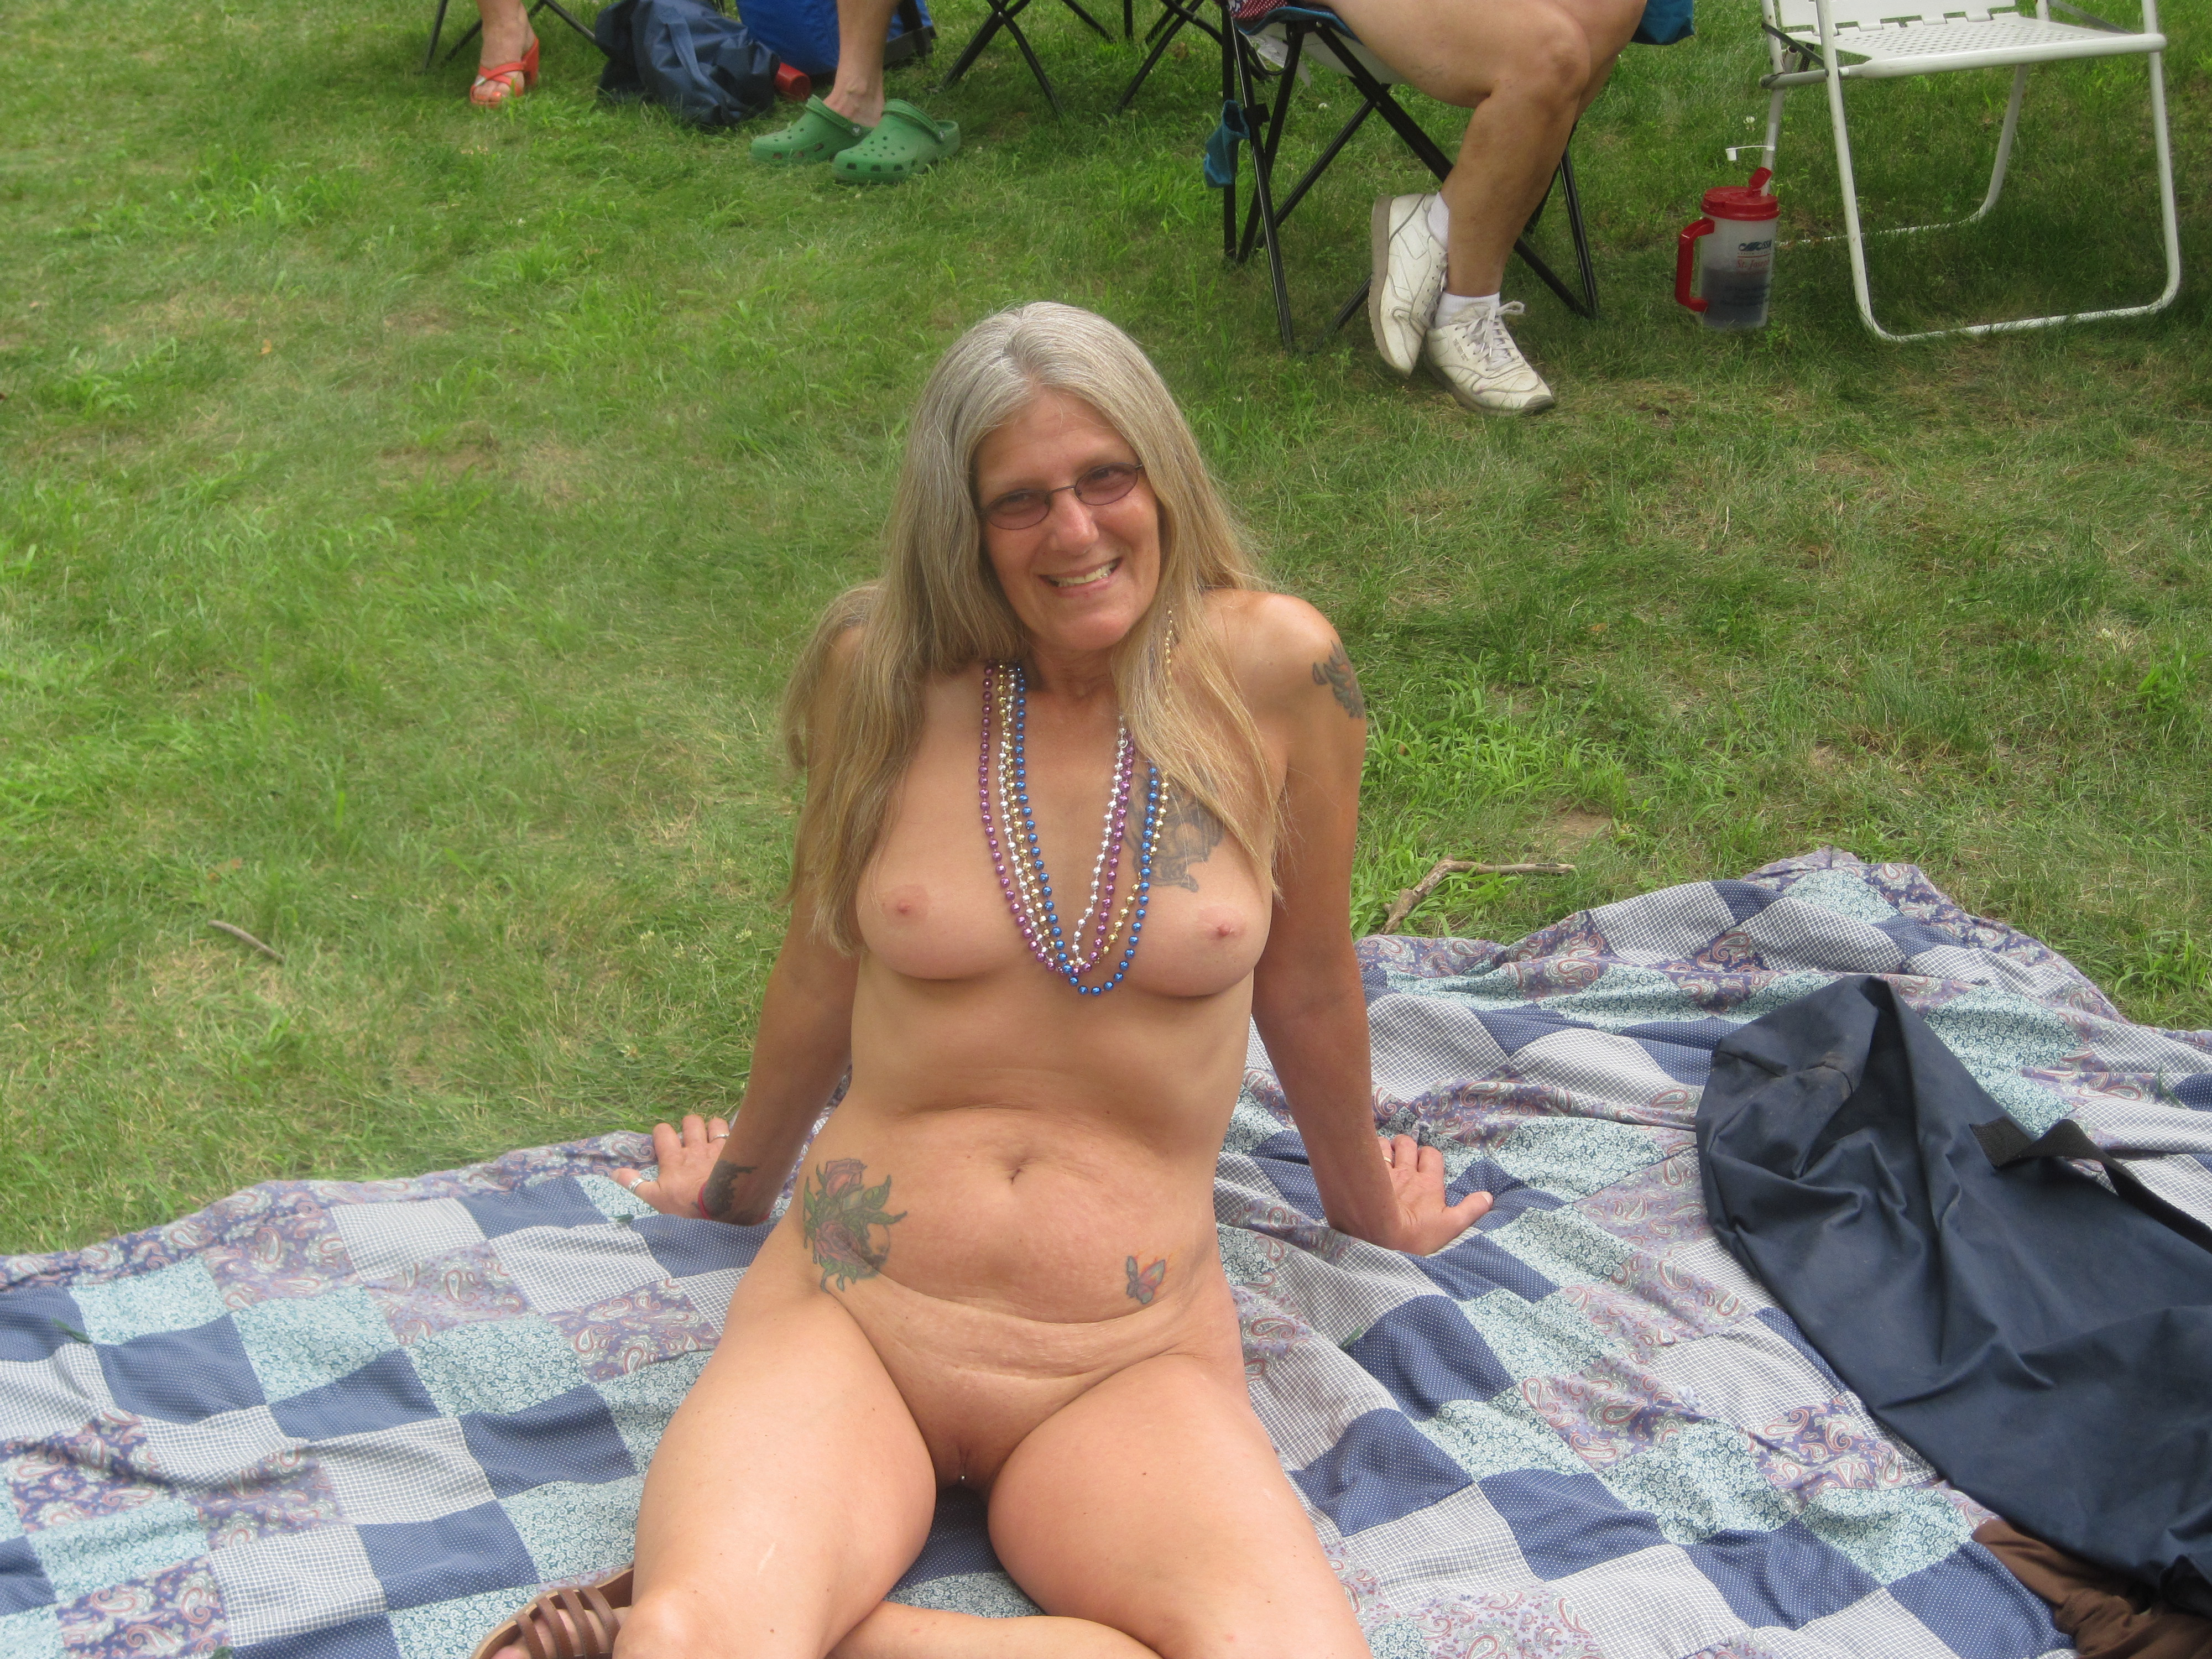 Naturist nudist women the